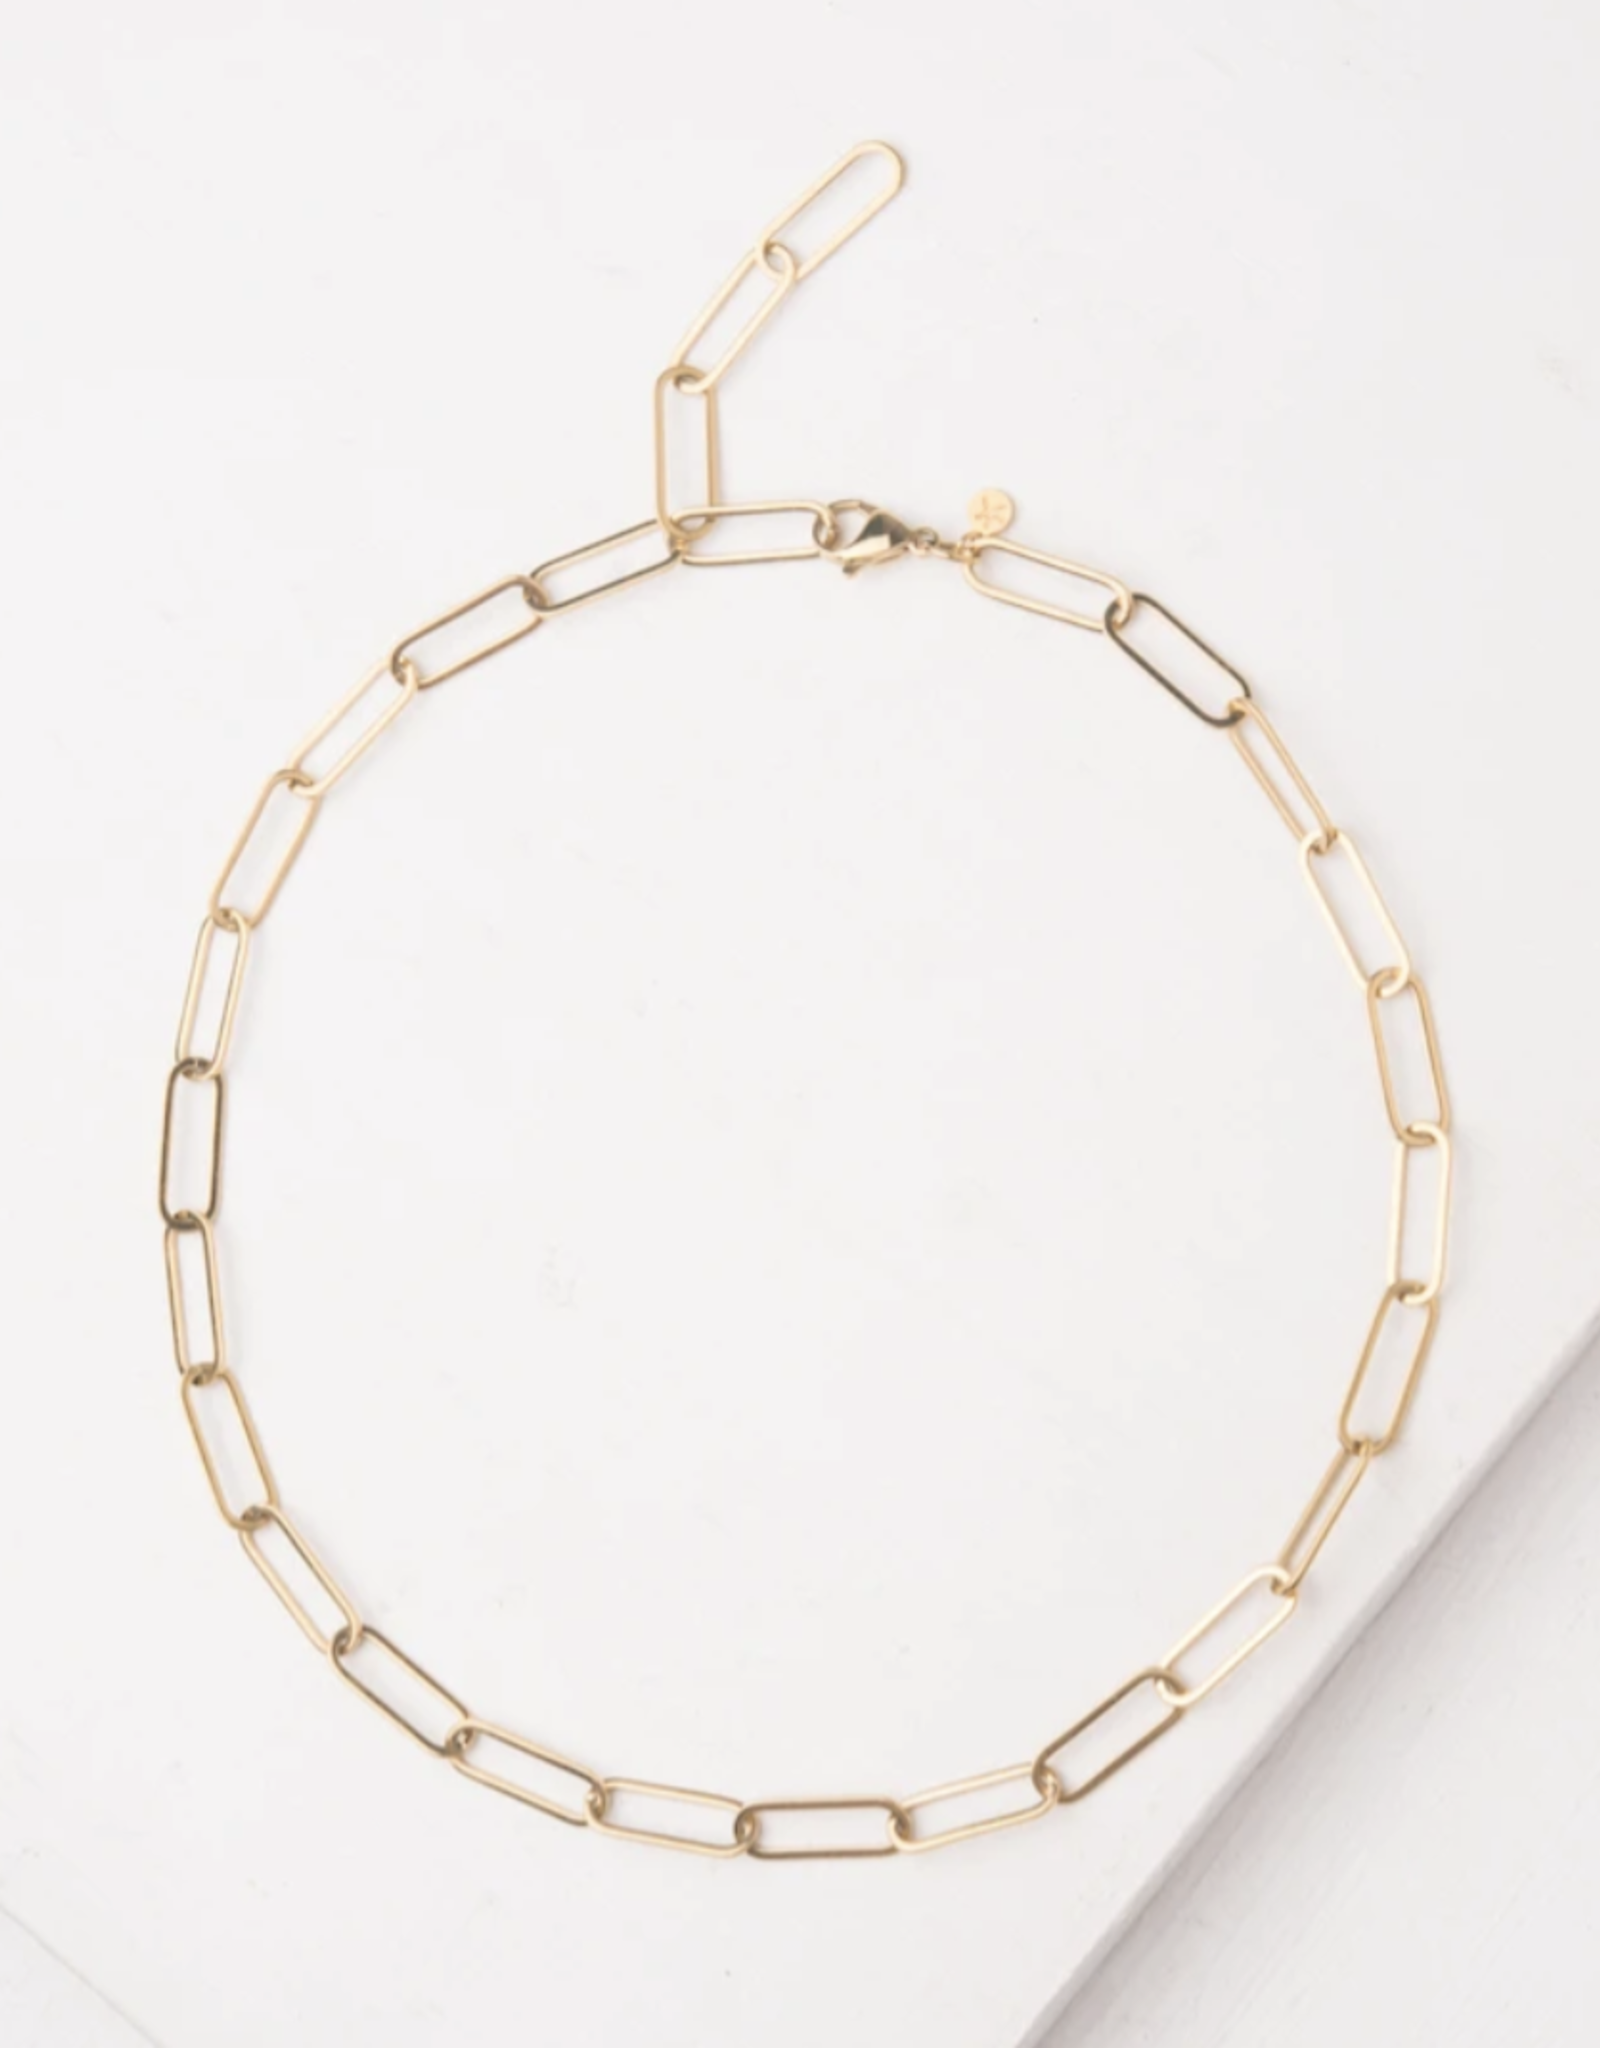 Georgie Gold Chain Necklace